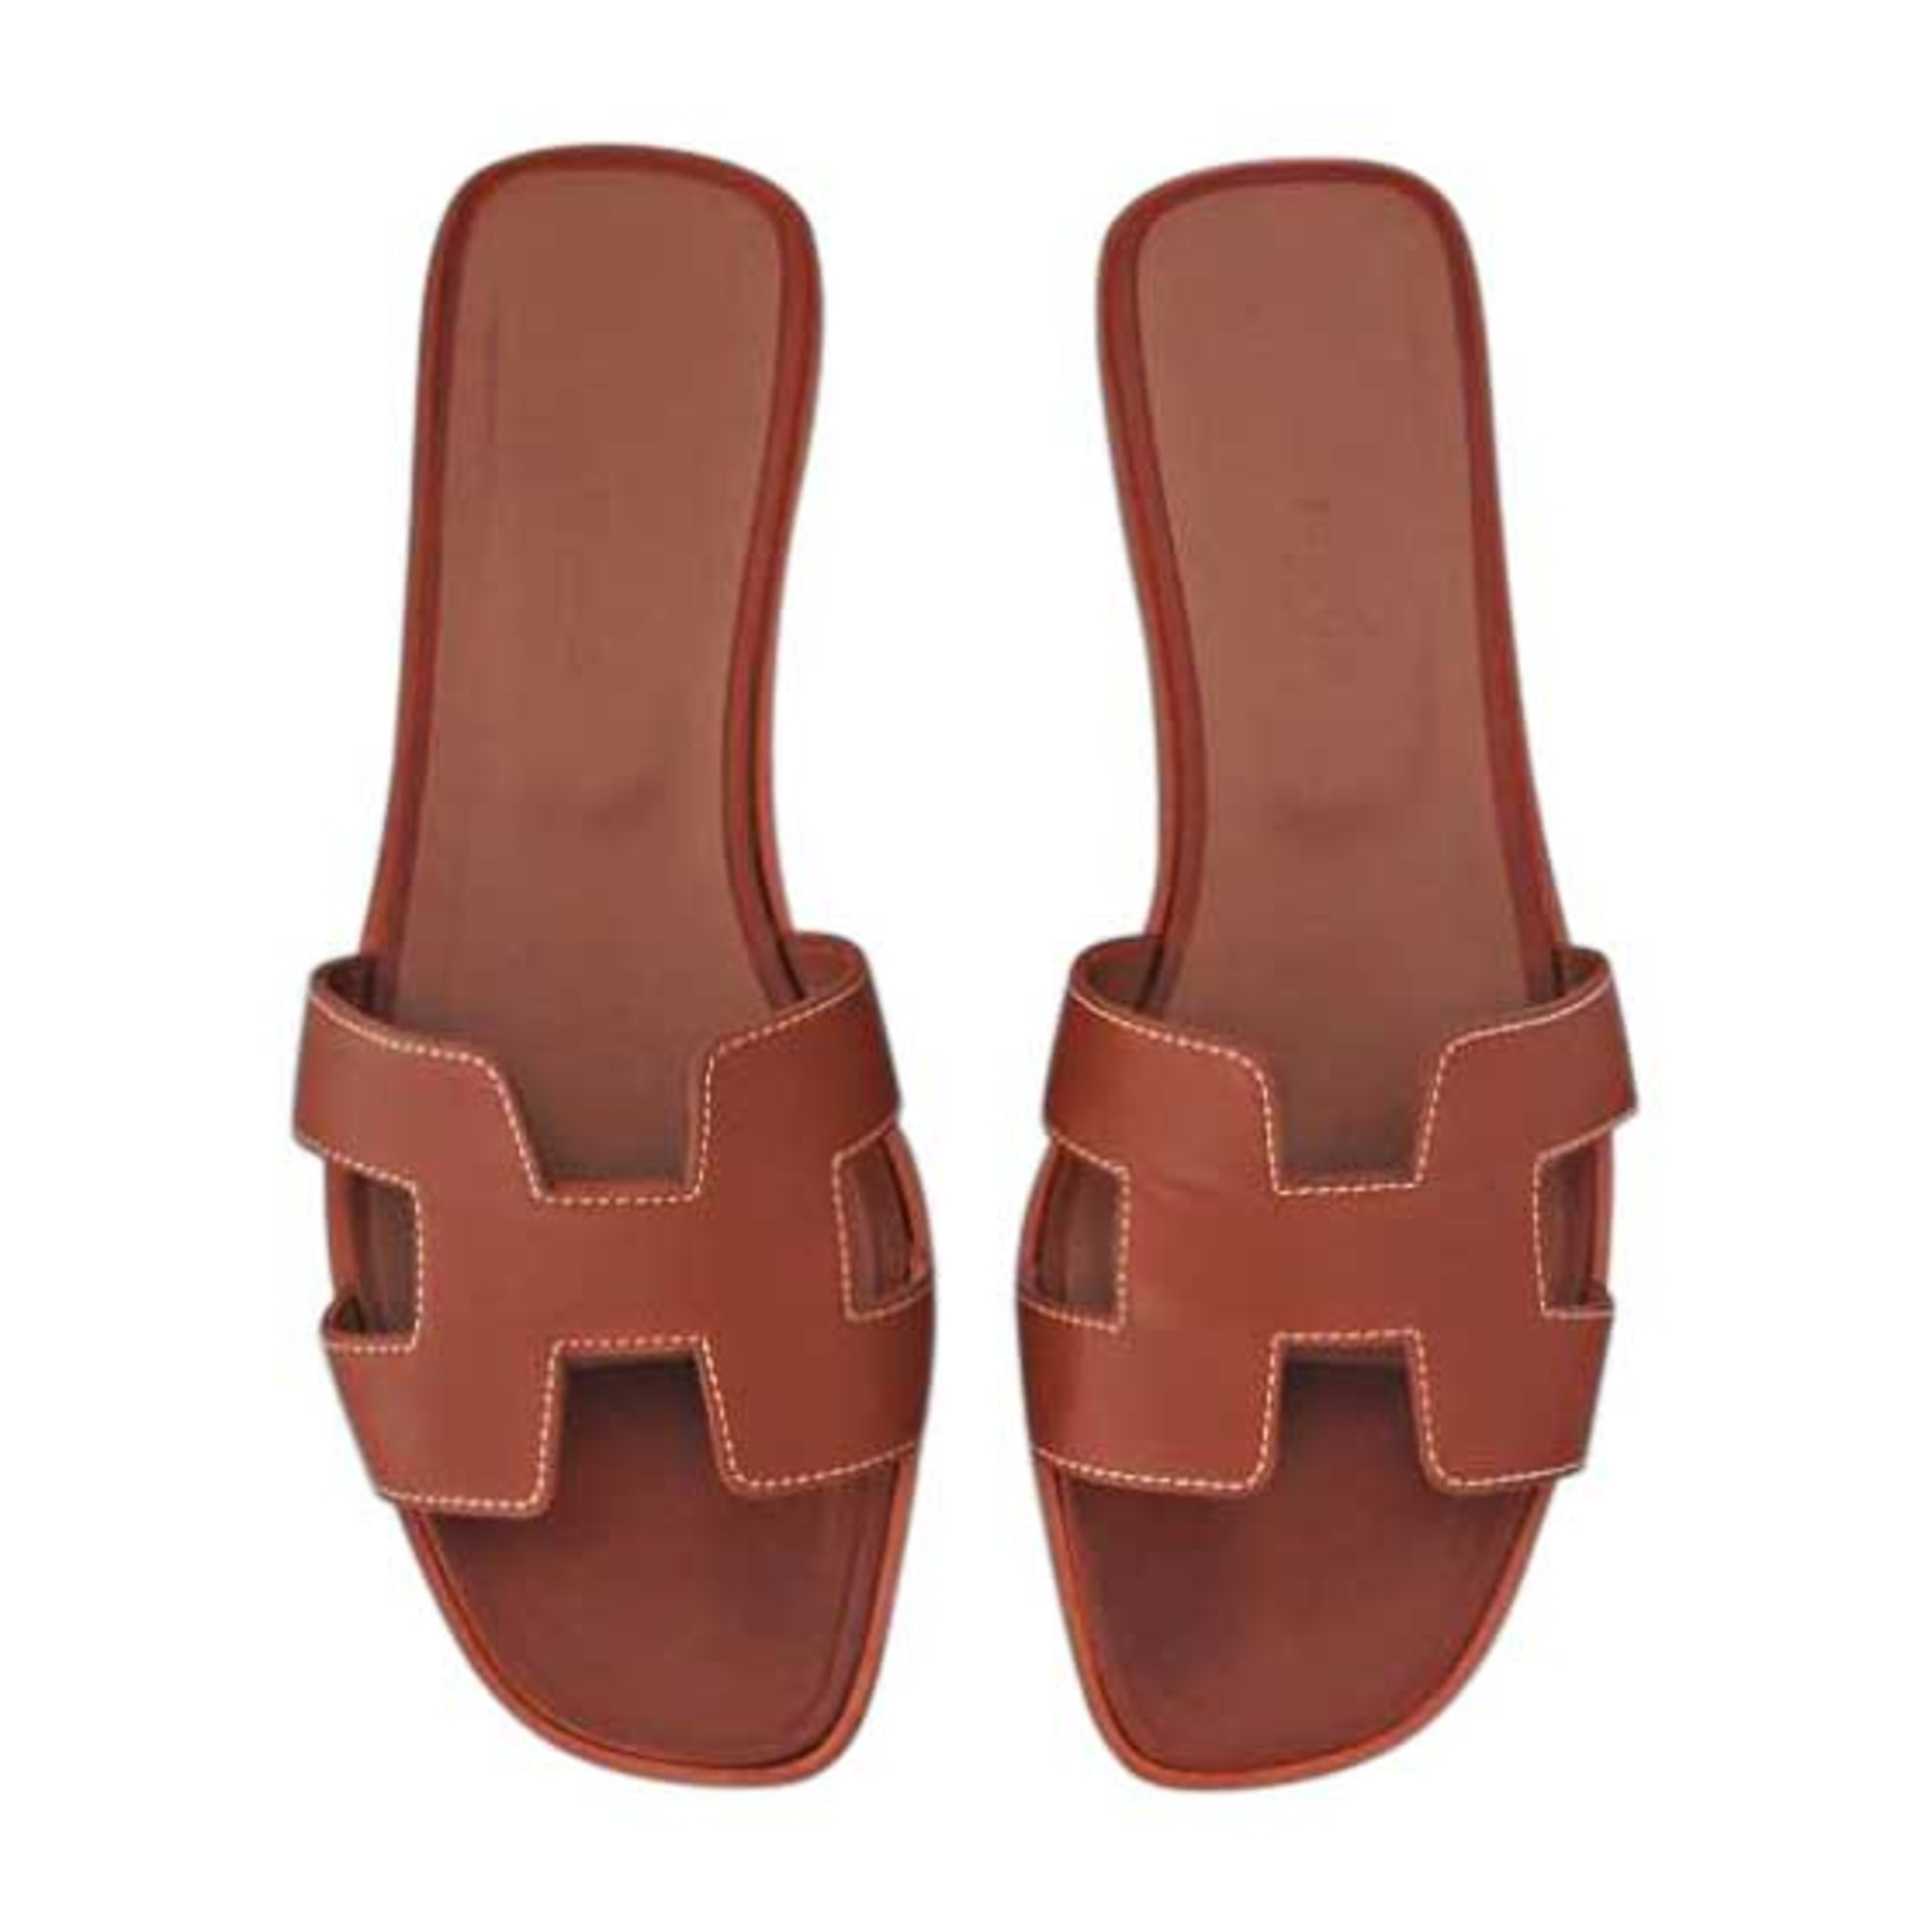 Mules HERMÈS Brown